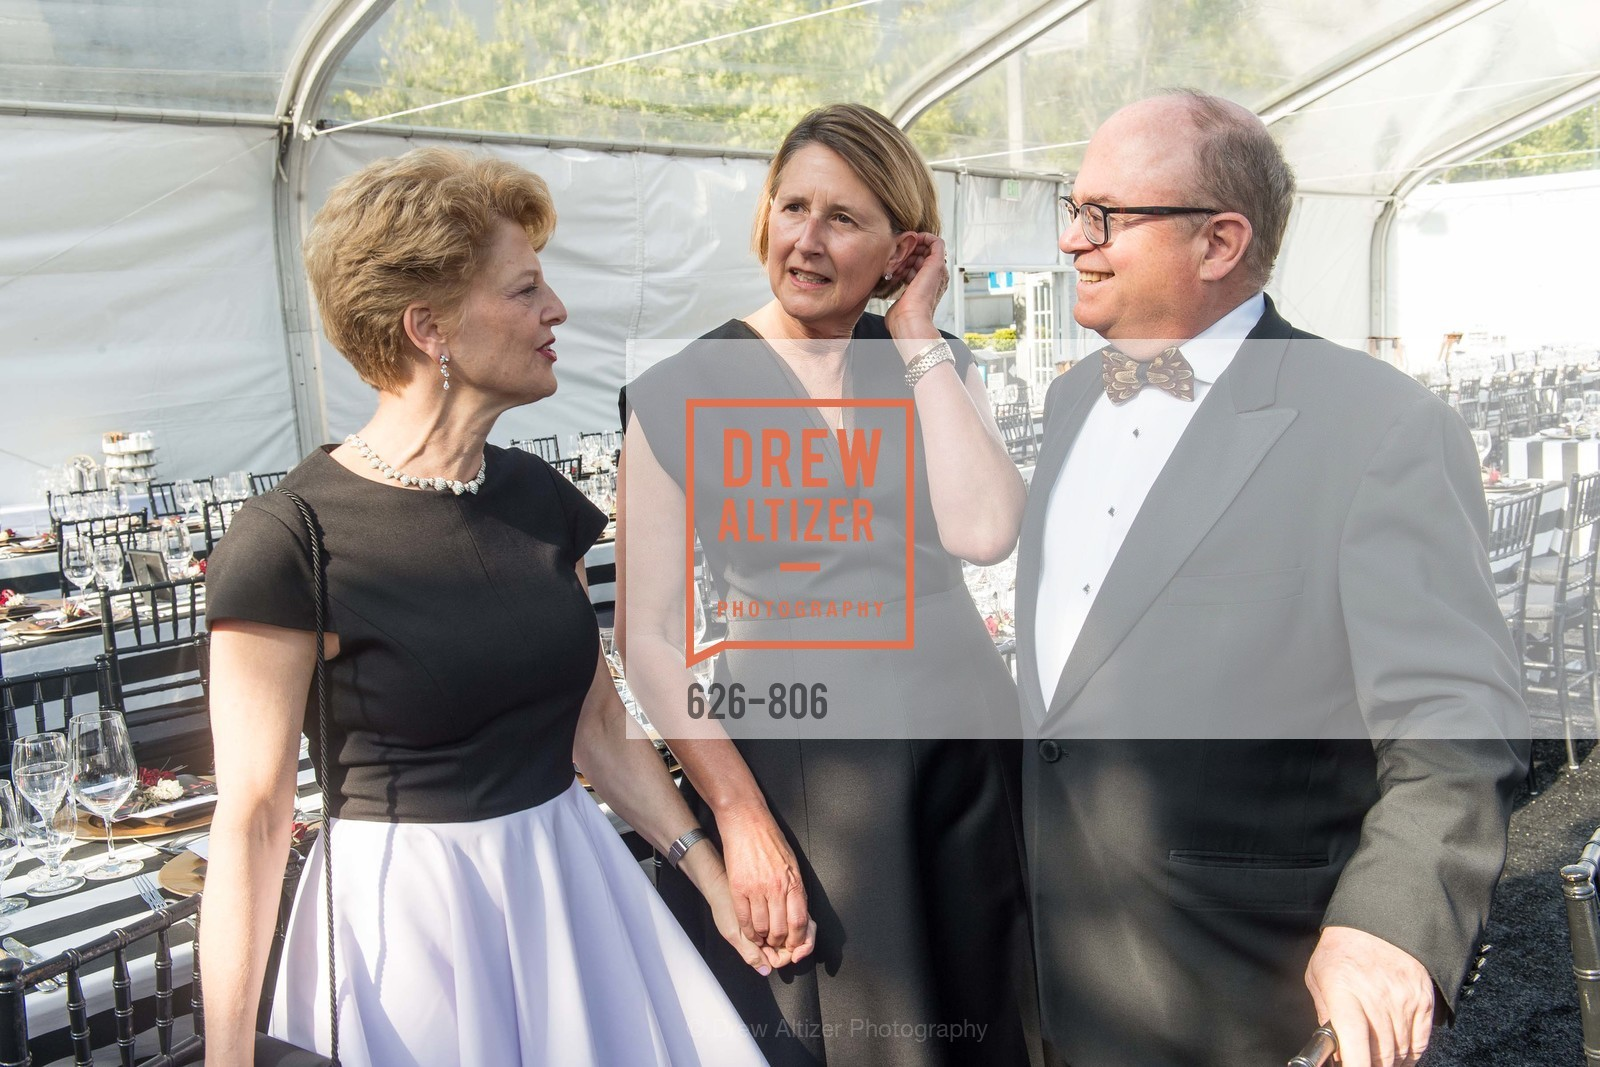 Carey Perloff, Prisca Geeslin, A.C.T. Gala Come Get Stranded, US, April 25th, 2015,Drew Altizer, Drew Altizer Photography, full-service agency, private events, San Francisco photographer, photographer california